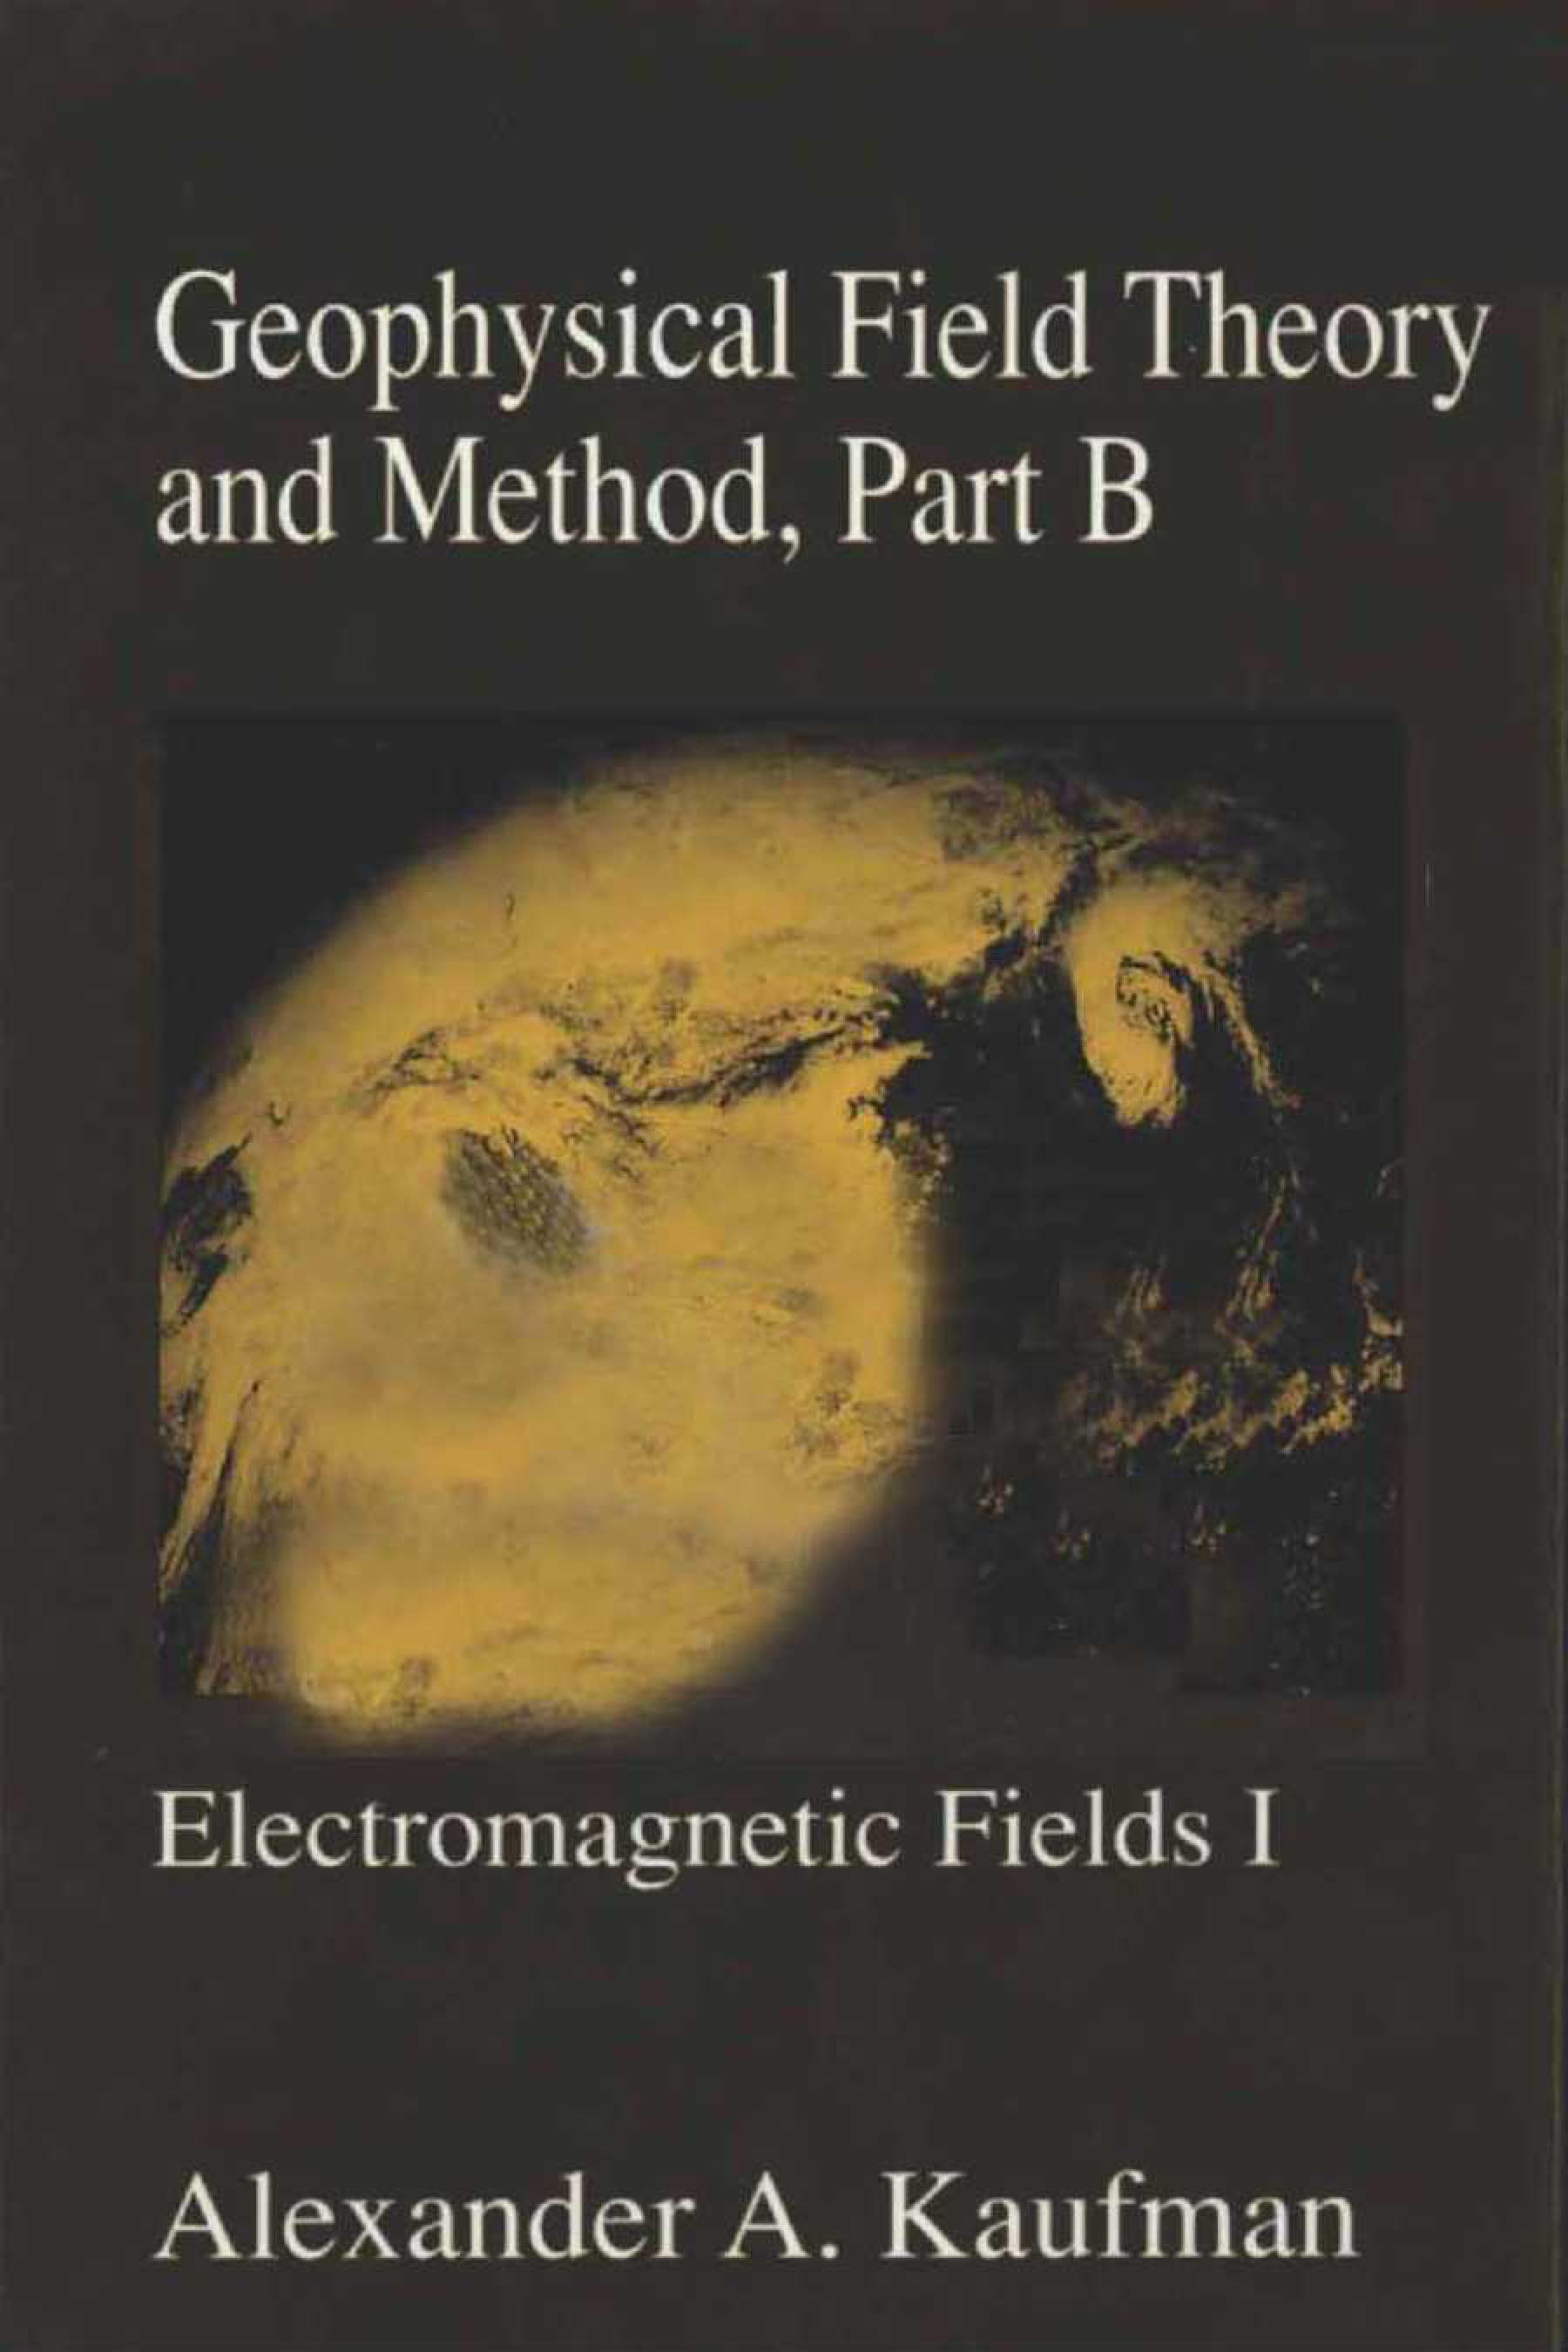 Geophysical Field Theory and Method, Part B: Electromagnetic Fields I